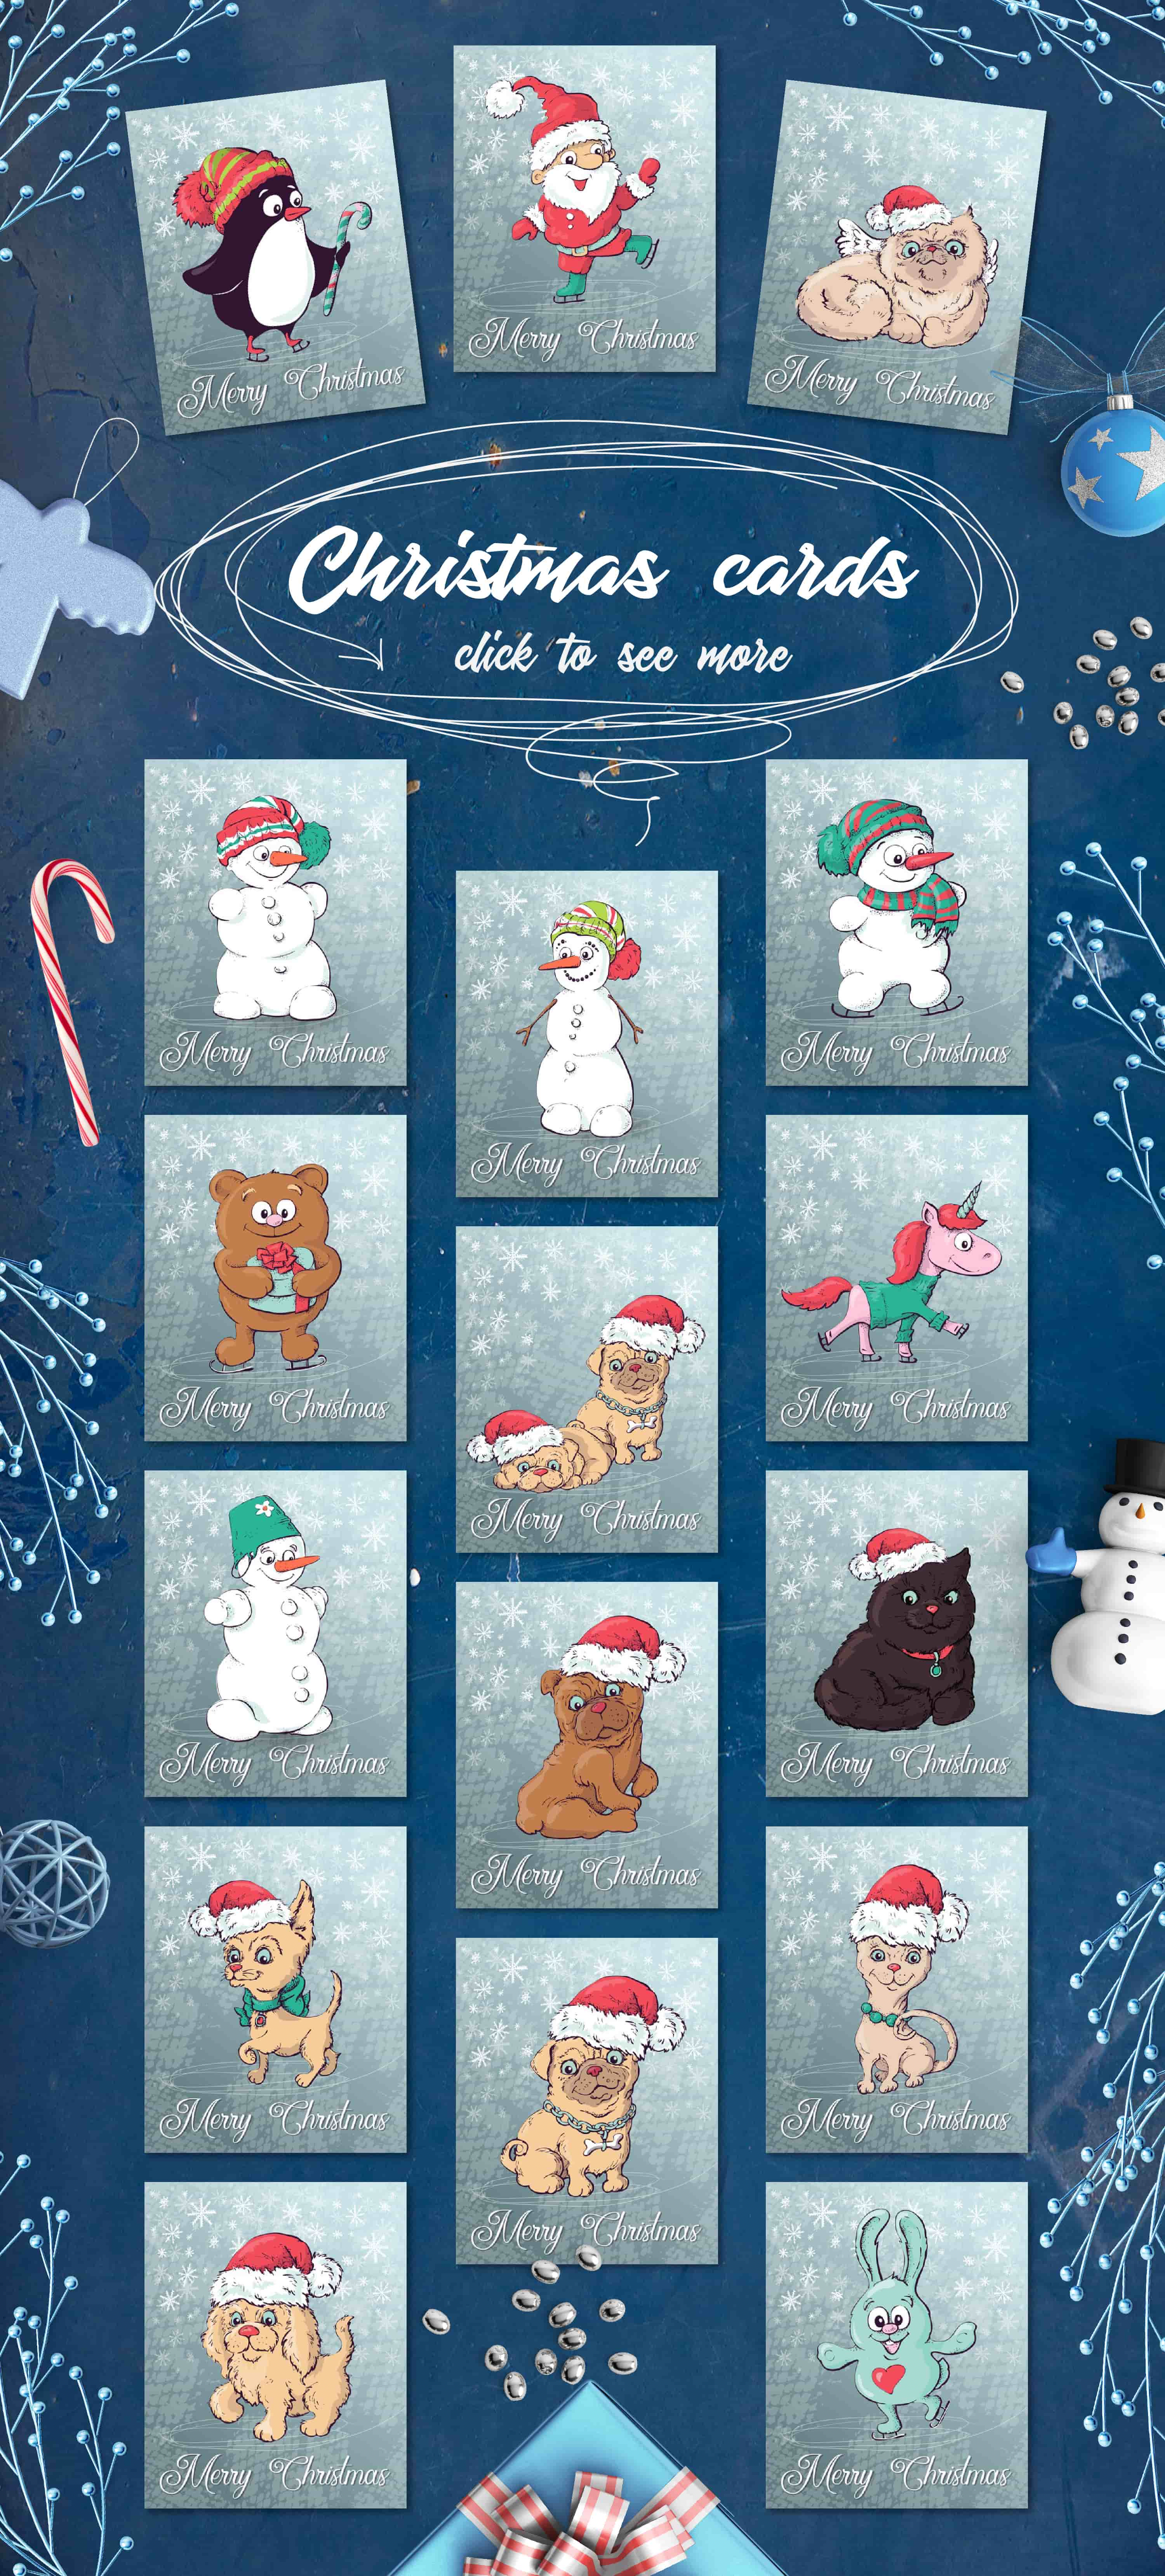 Merry Christmas Images: patterns, cards and items - 3 cards min